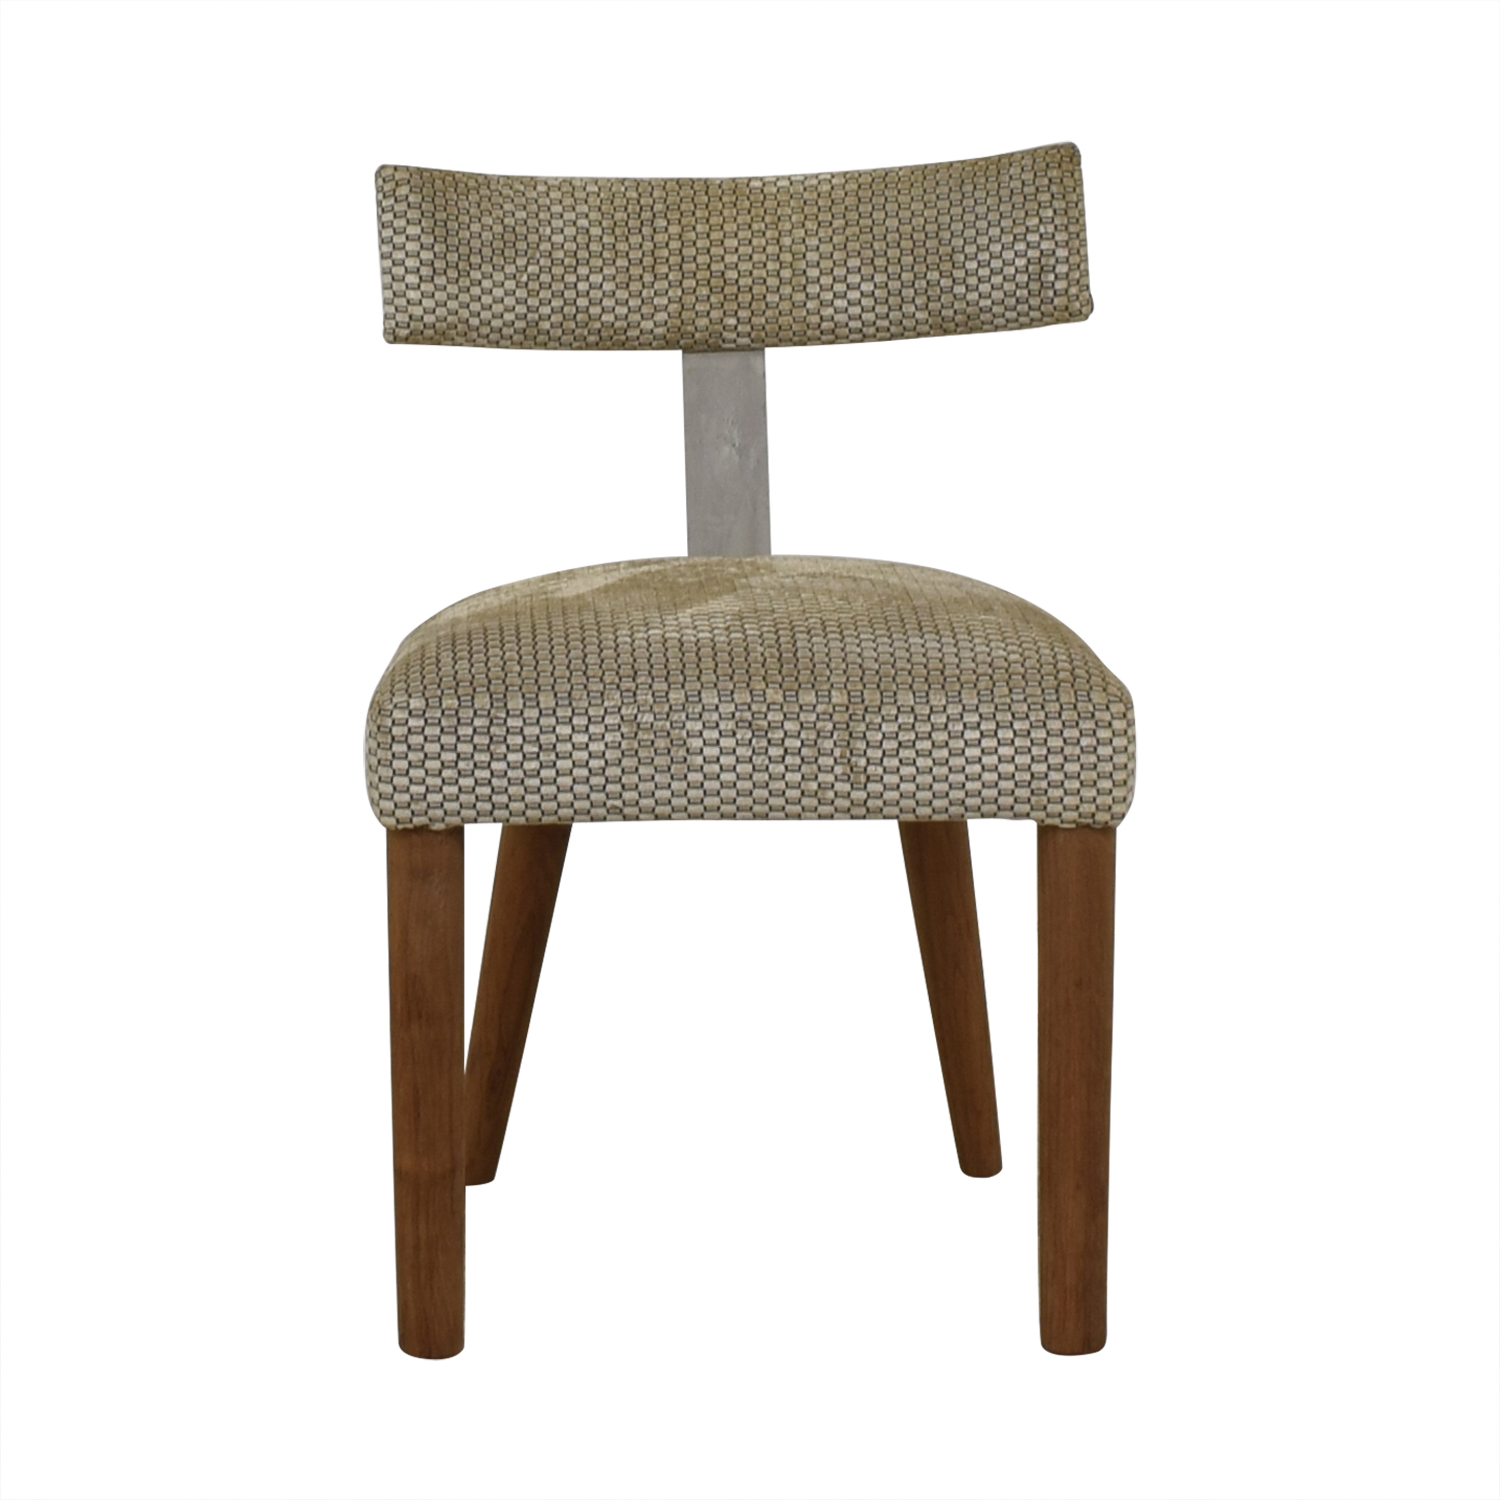 Furniture Masters Furniture Masters Modern Accent Chair second hand